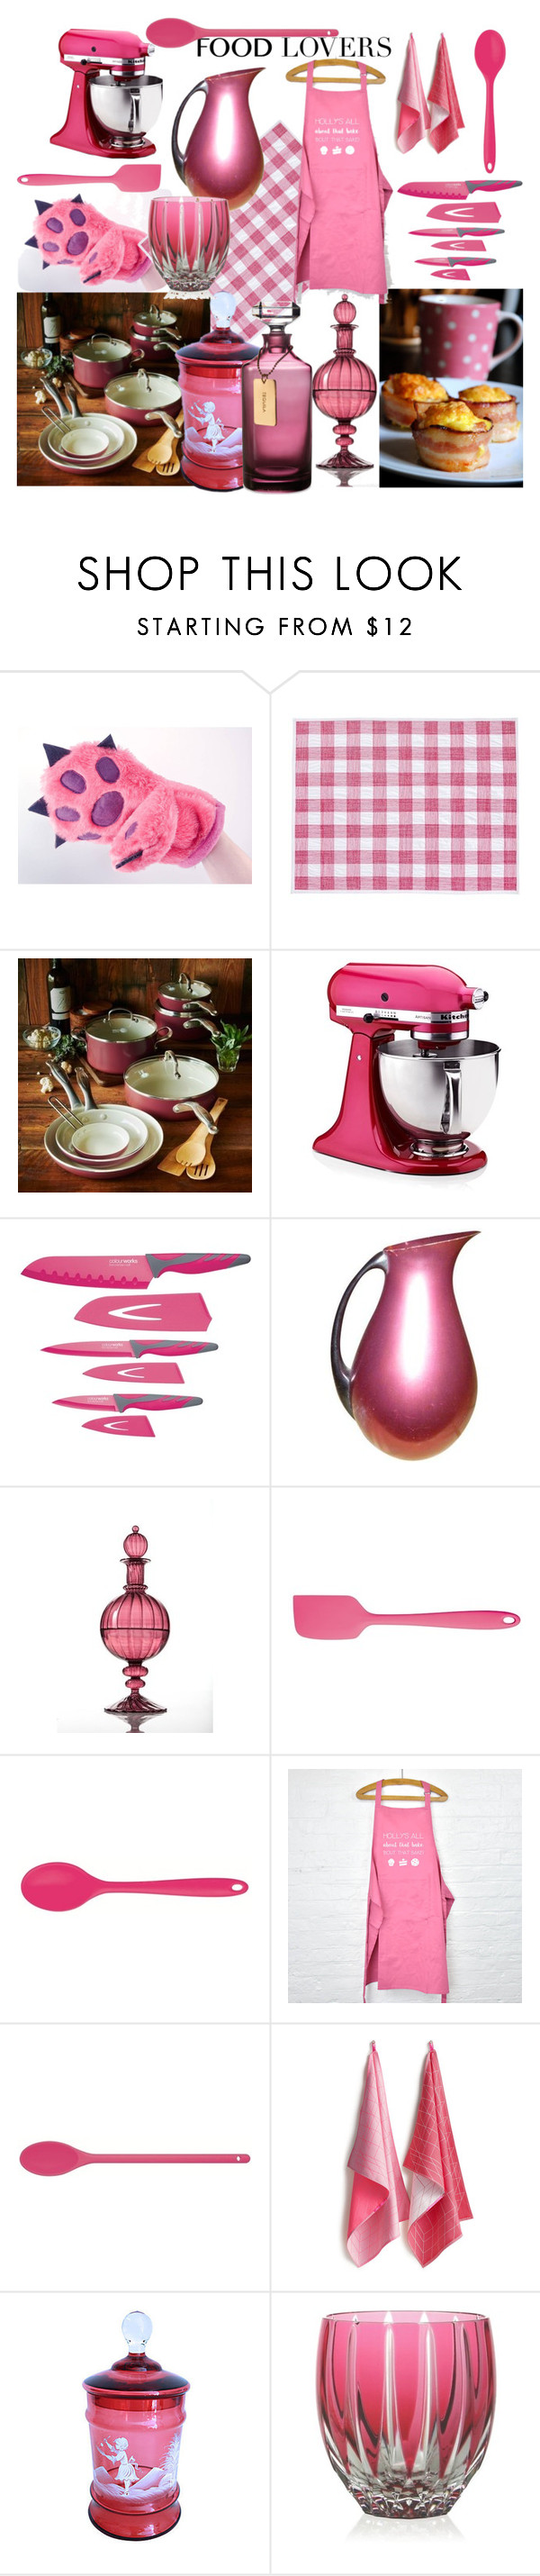 """""""Untitled #104"""" by crisvalx-cv ❤ liked on Polyvore featuring interior, interiors, interior design, home, home decor, interior decorating, GreenPan, KitchenAid, Kitchen Craft Colourworks and HAY"""